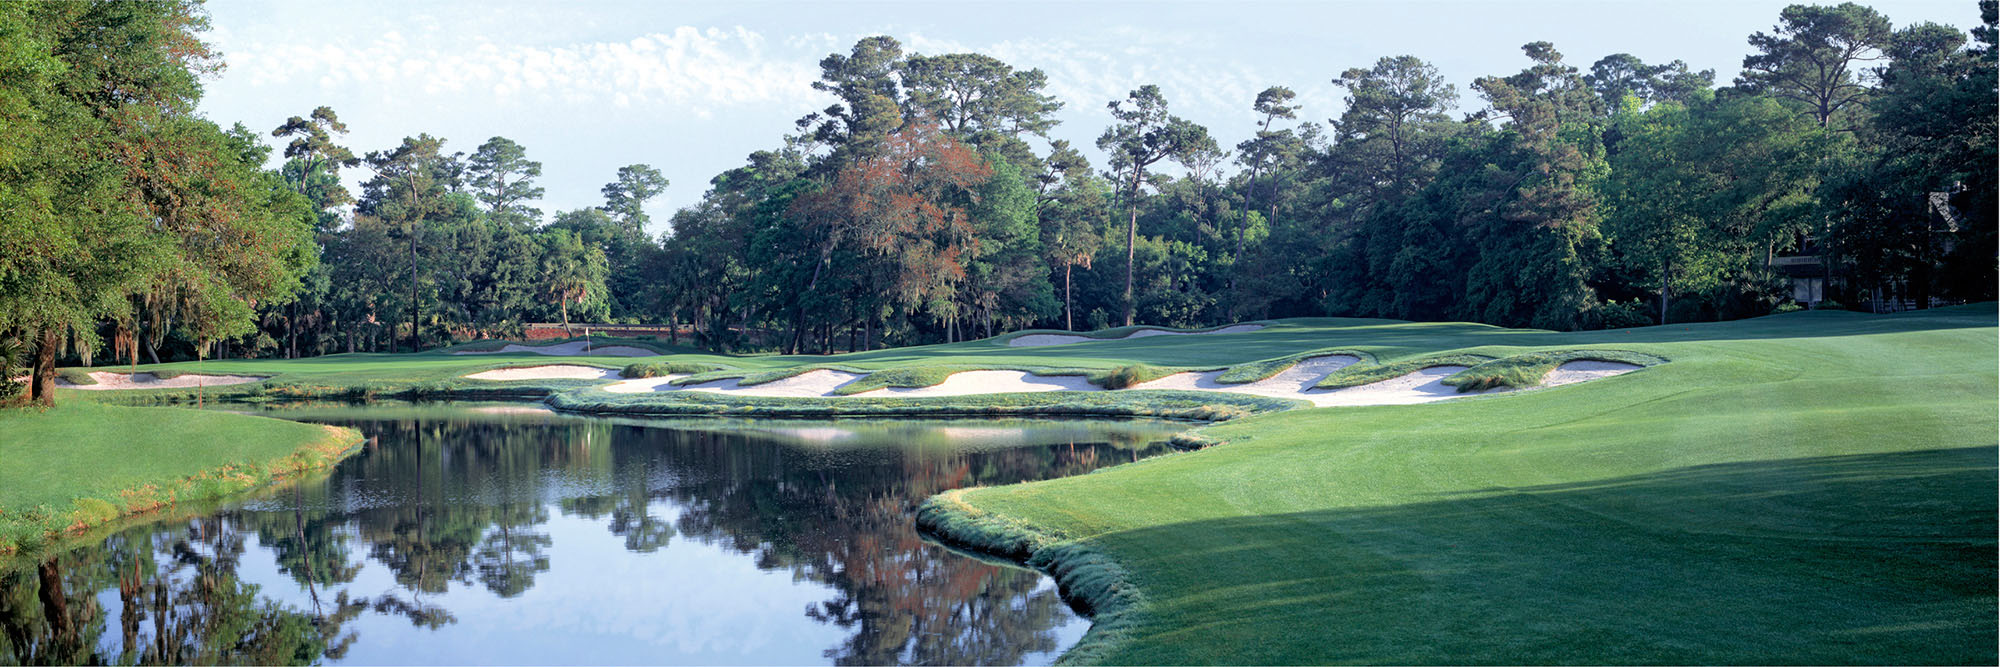 Golf Course Image - Kiawah Cougar Point No. 3